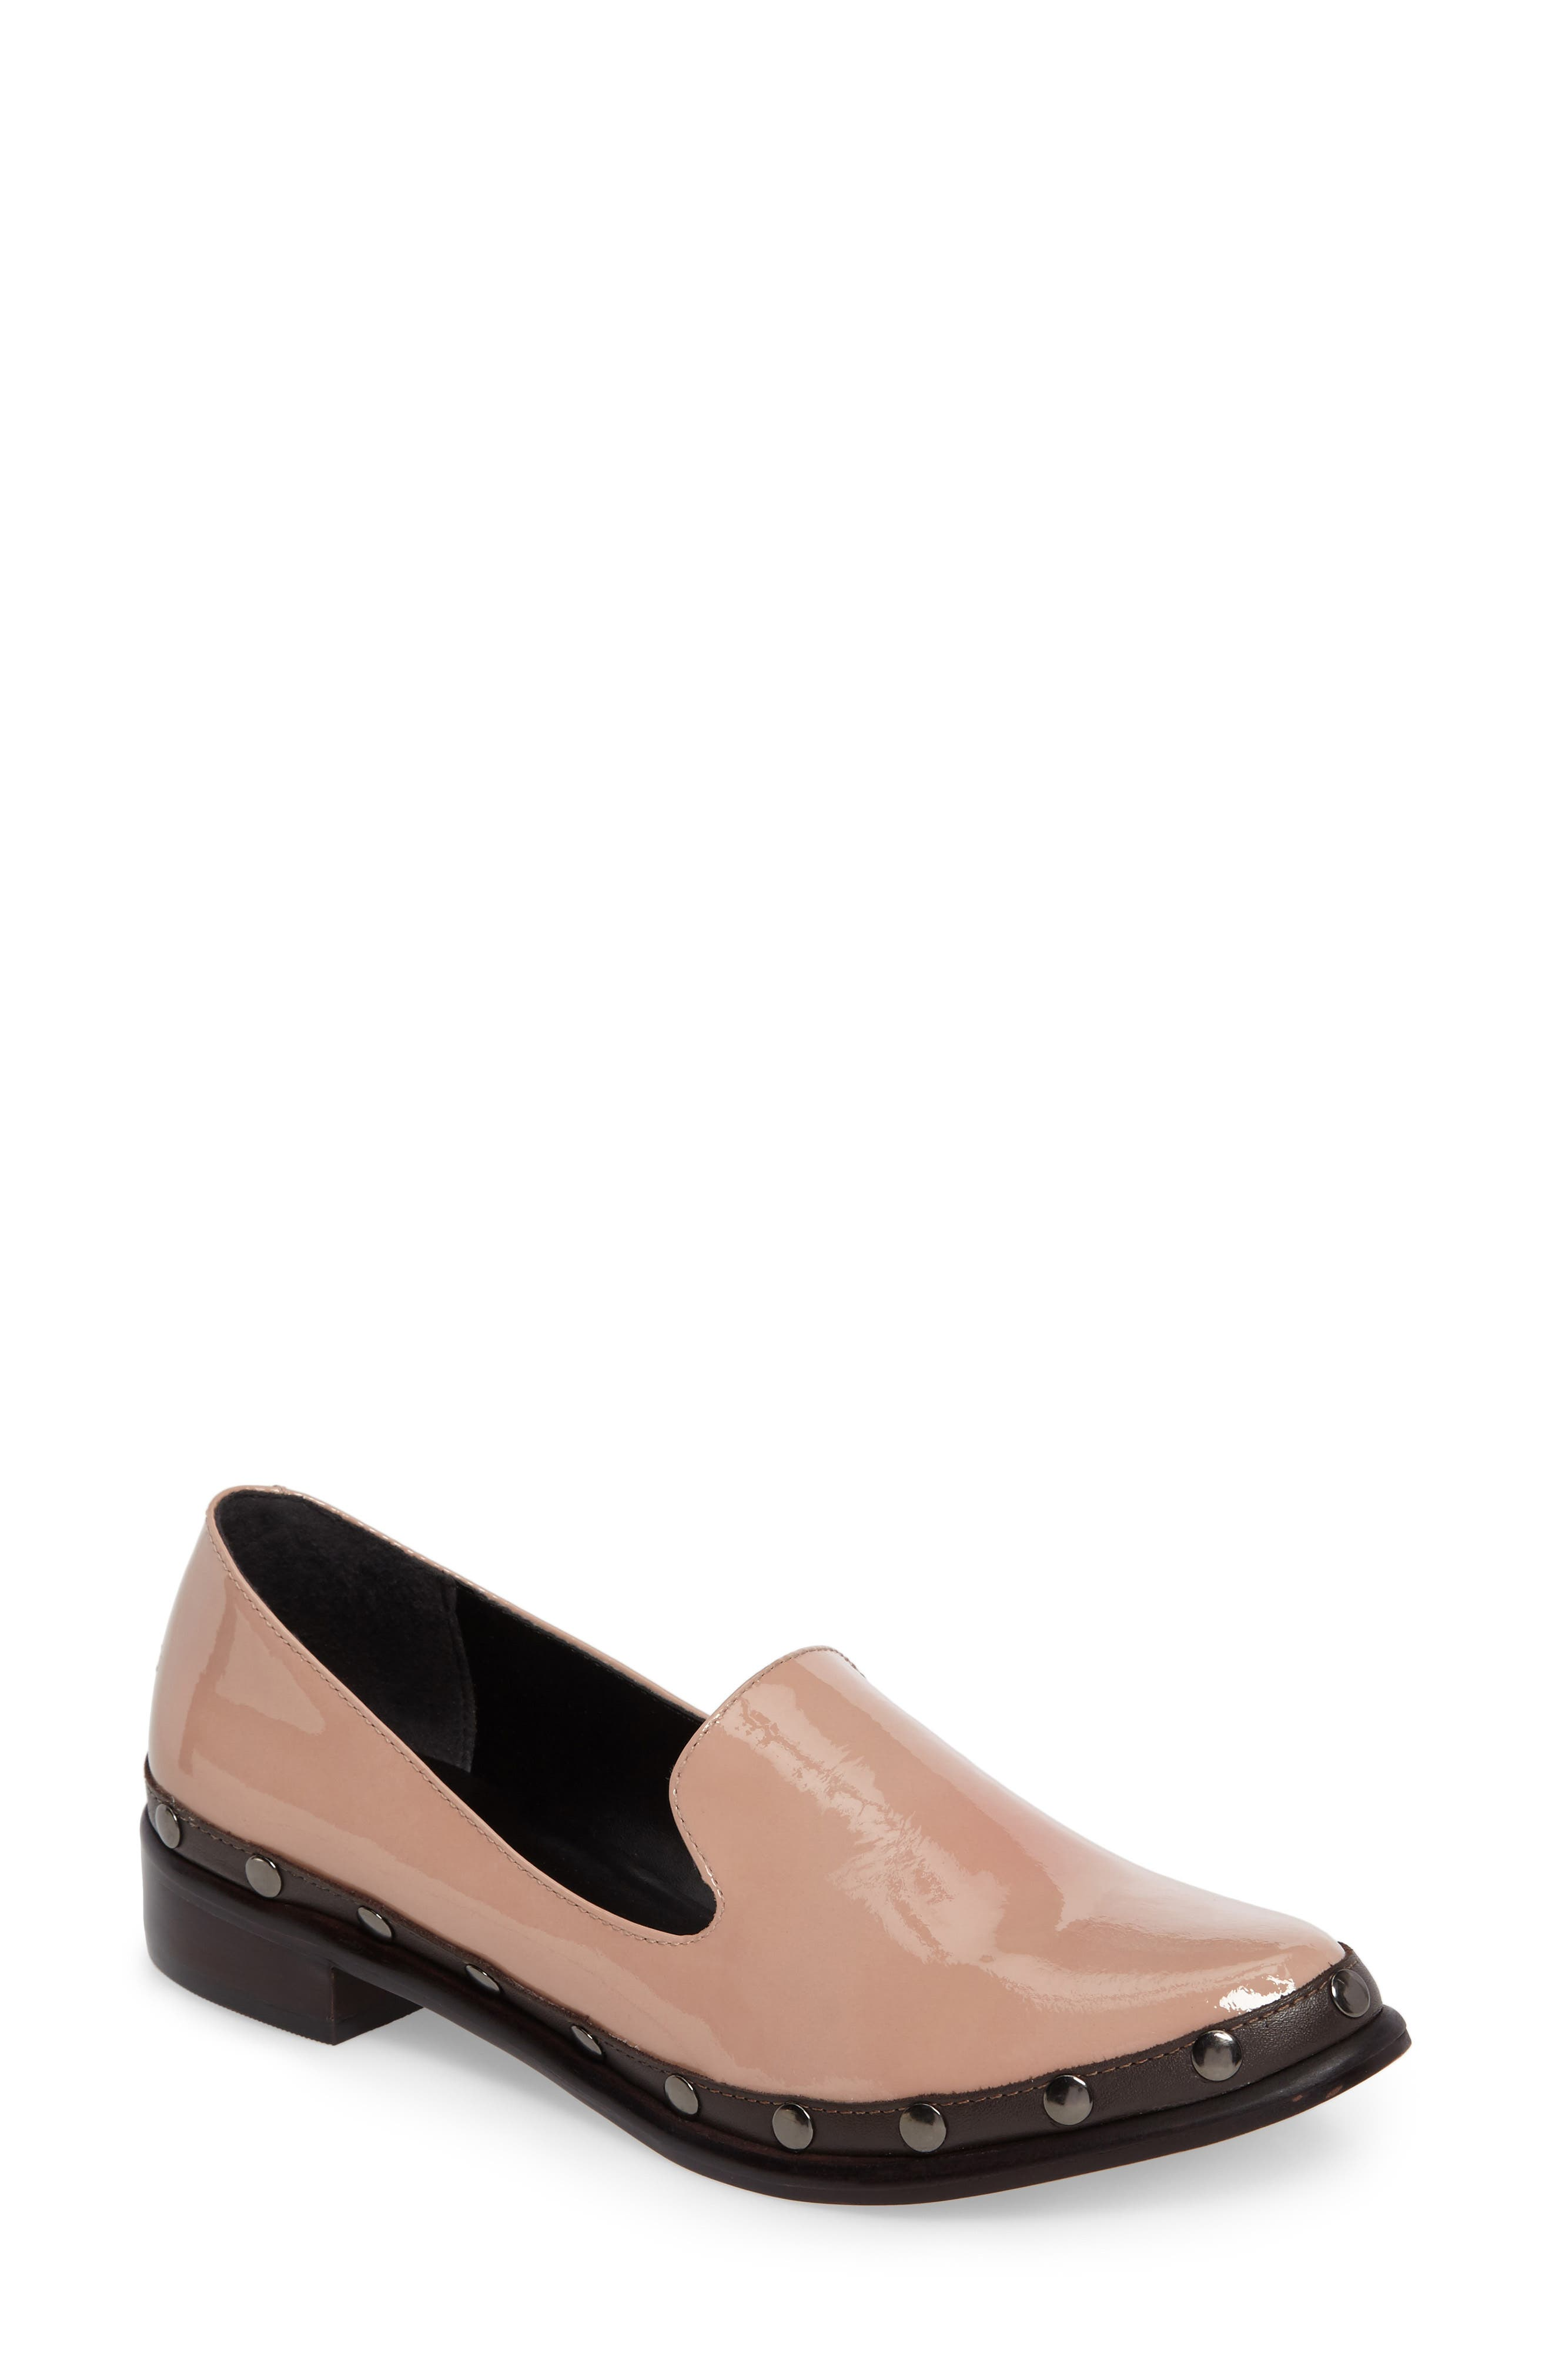 M4D3 Oceania Loafer,                             Main thumbnail 3, color,